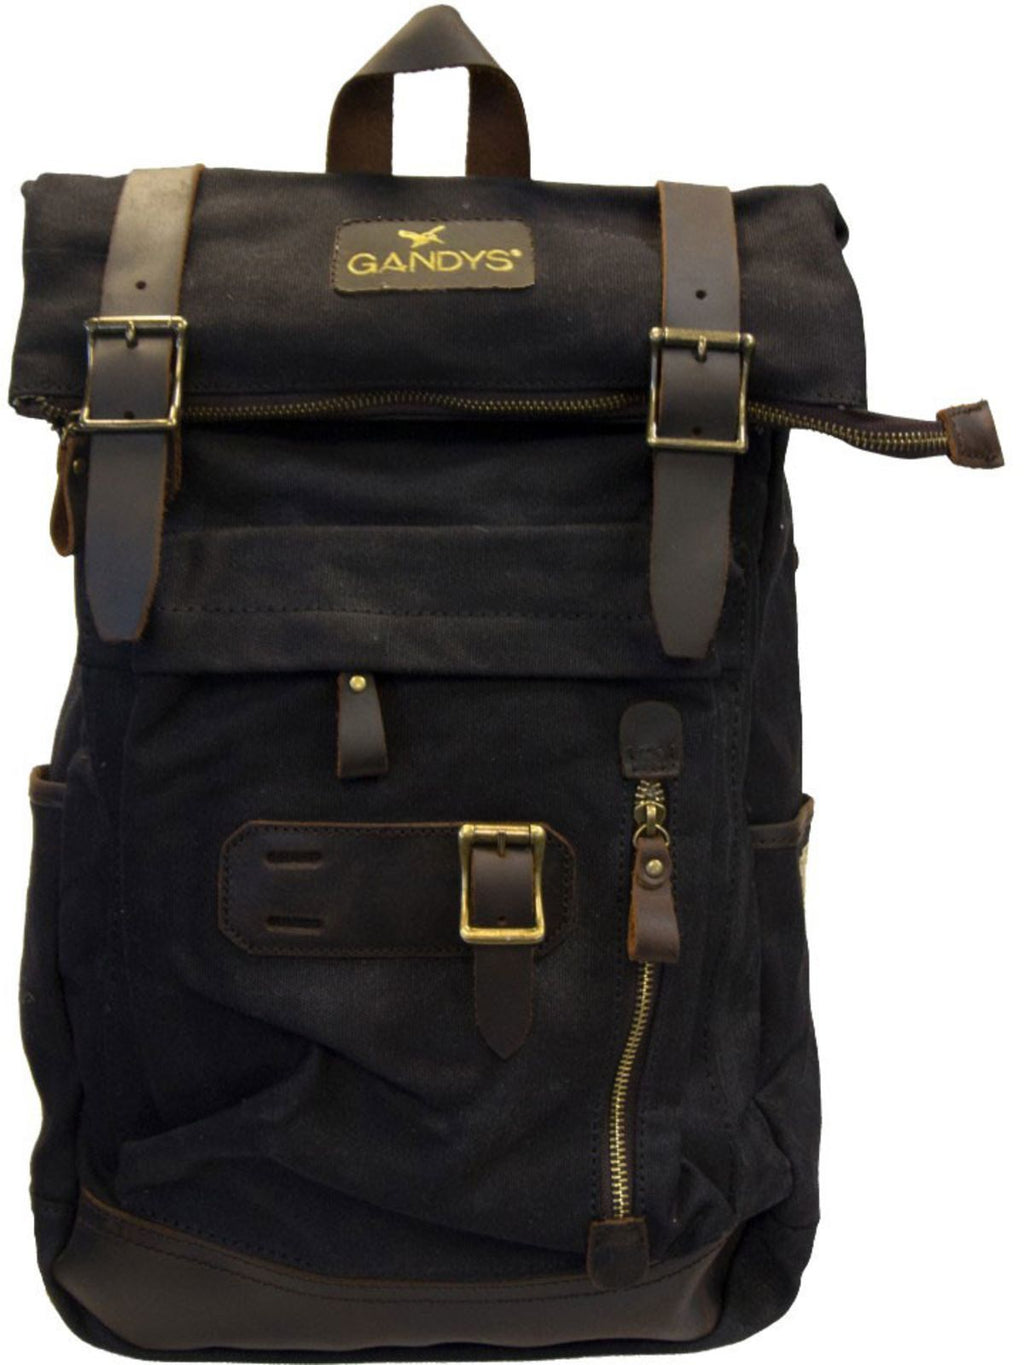 Gandys Bali Waxed Authentic Backpack Bag Black